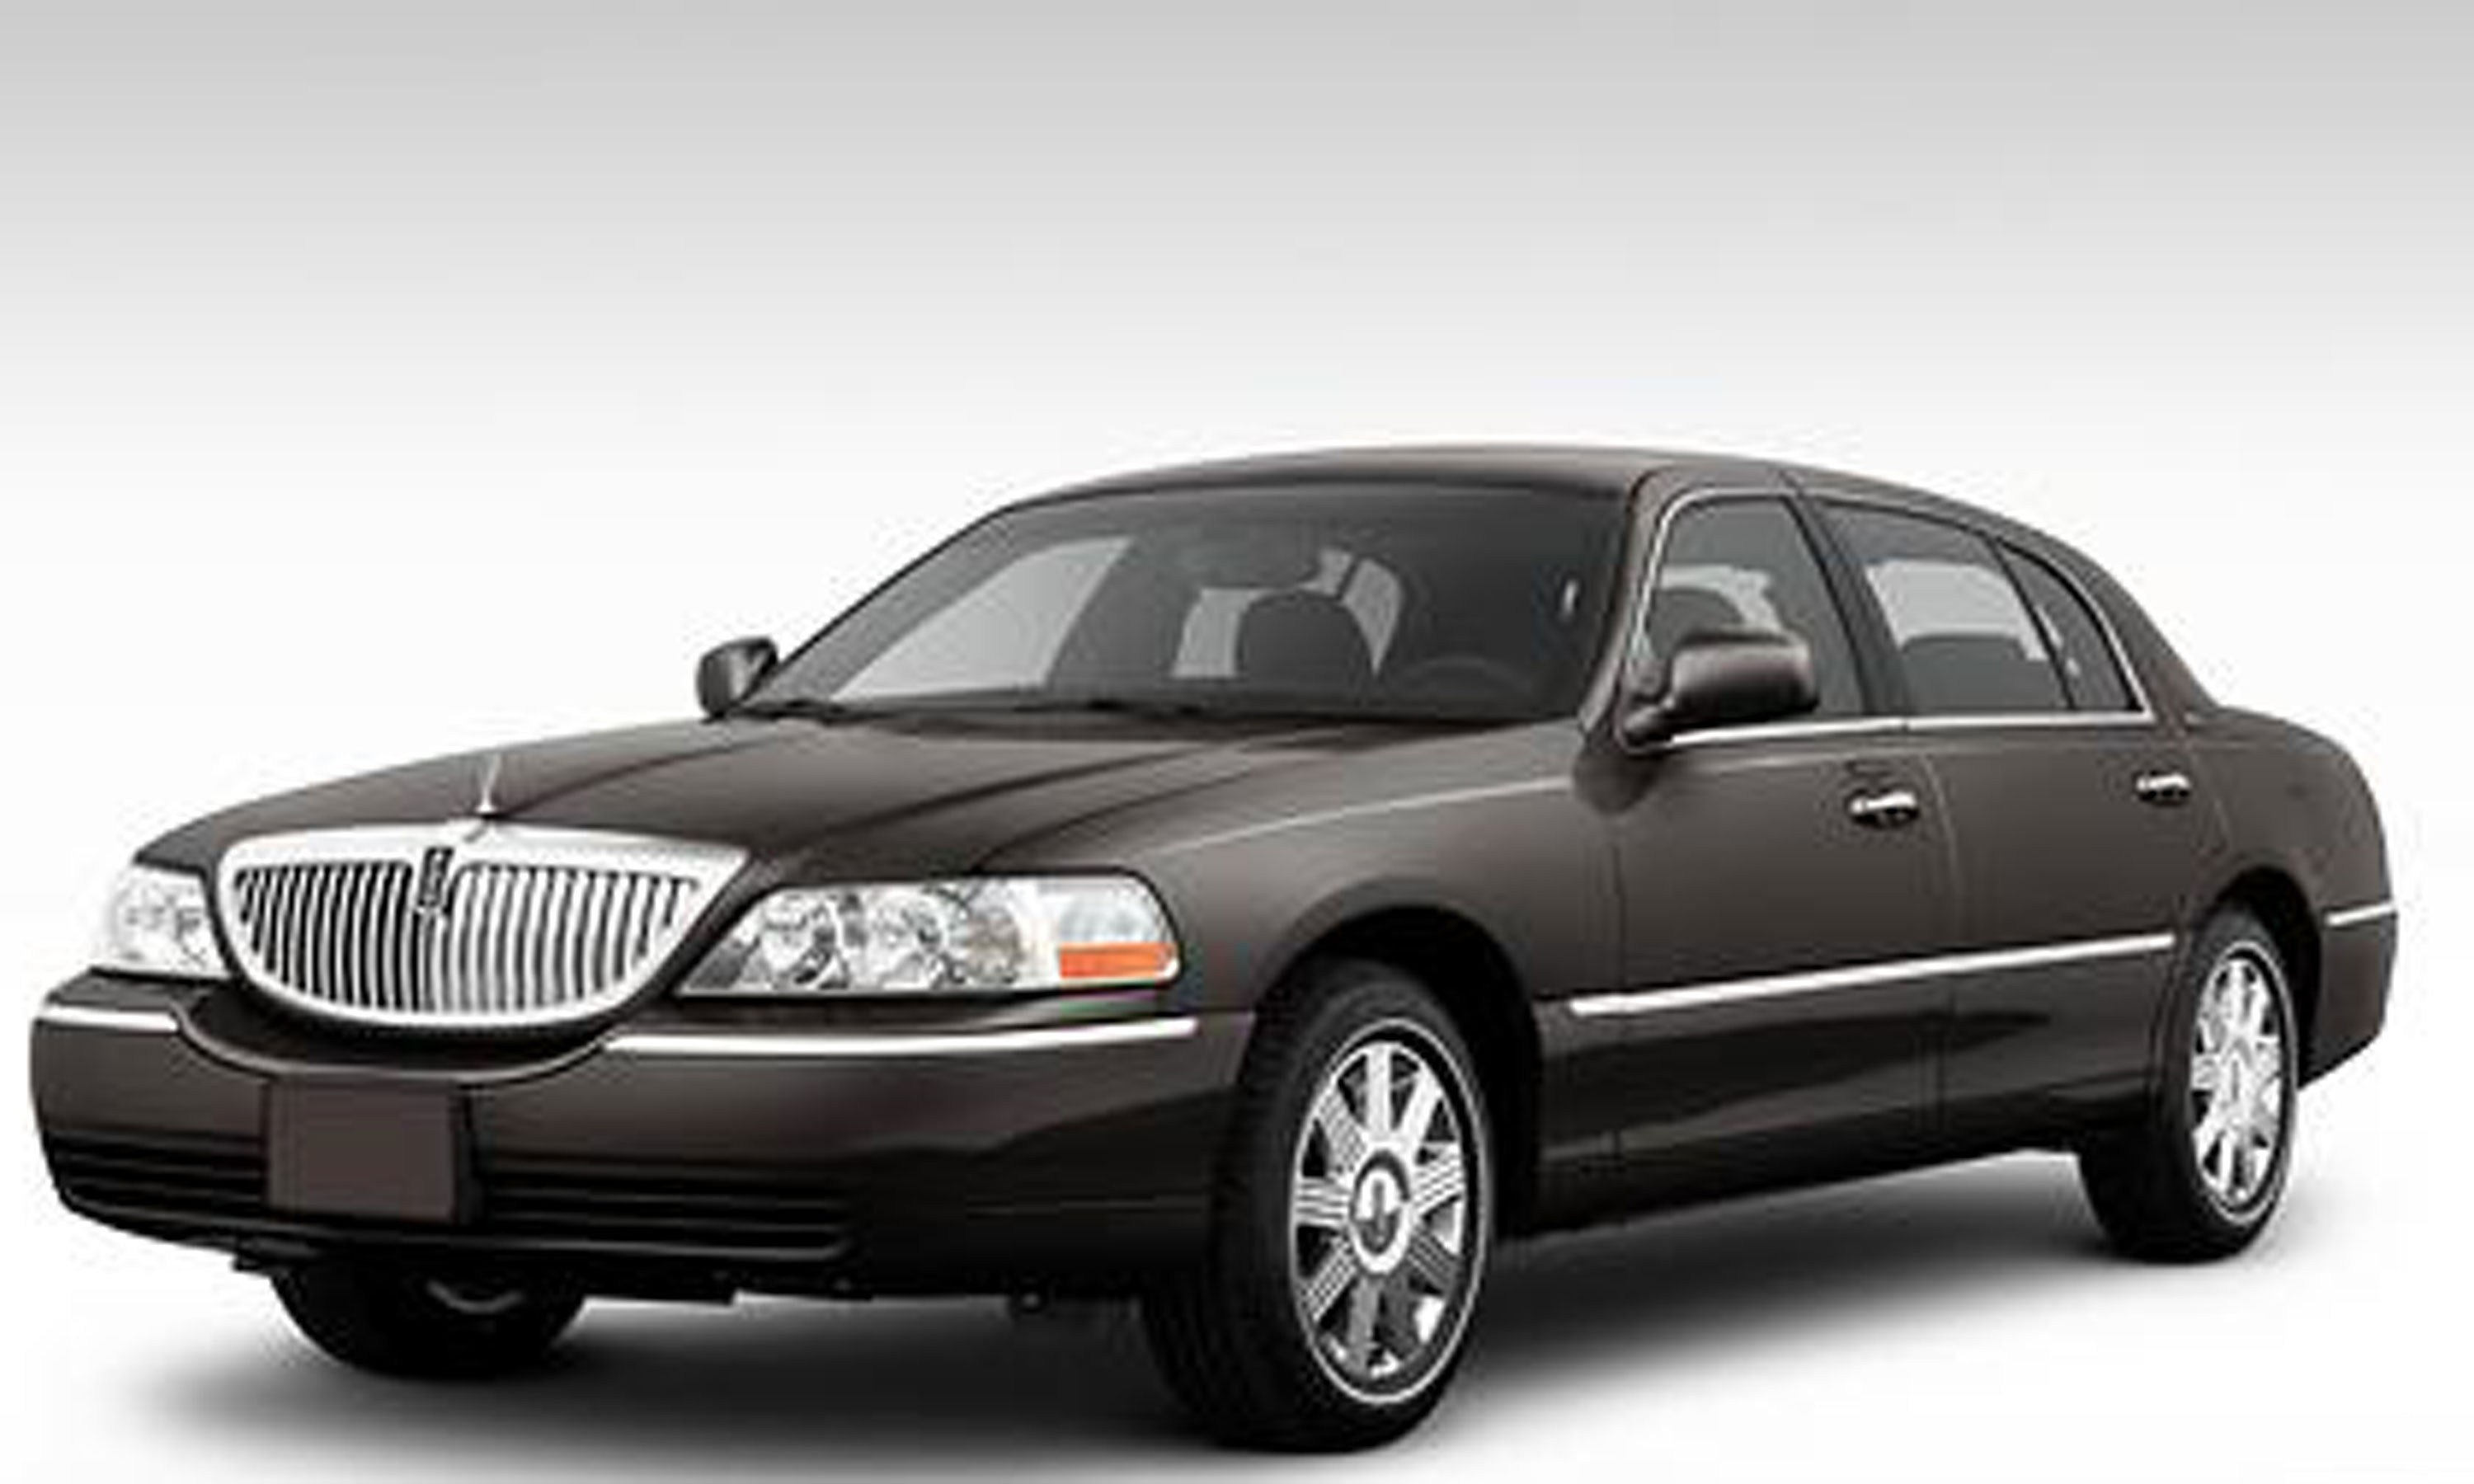 Latest 2011 Lincoln Town Car Photos Informations Articles Free Download Original 1024 x 768